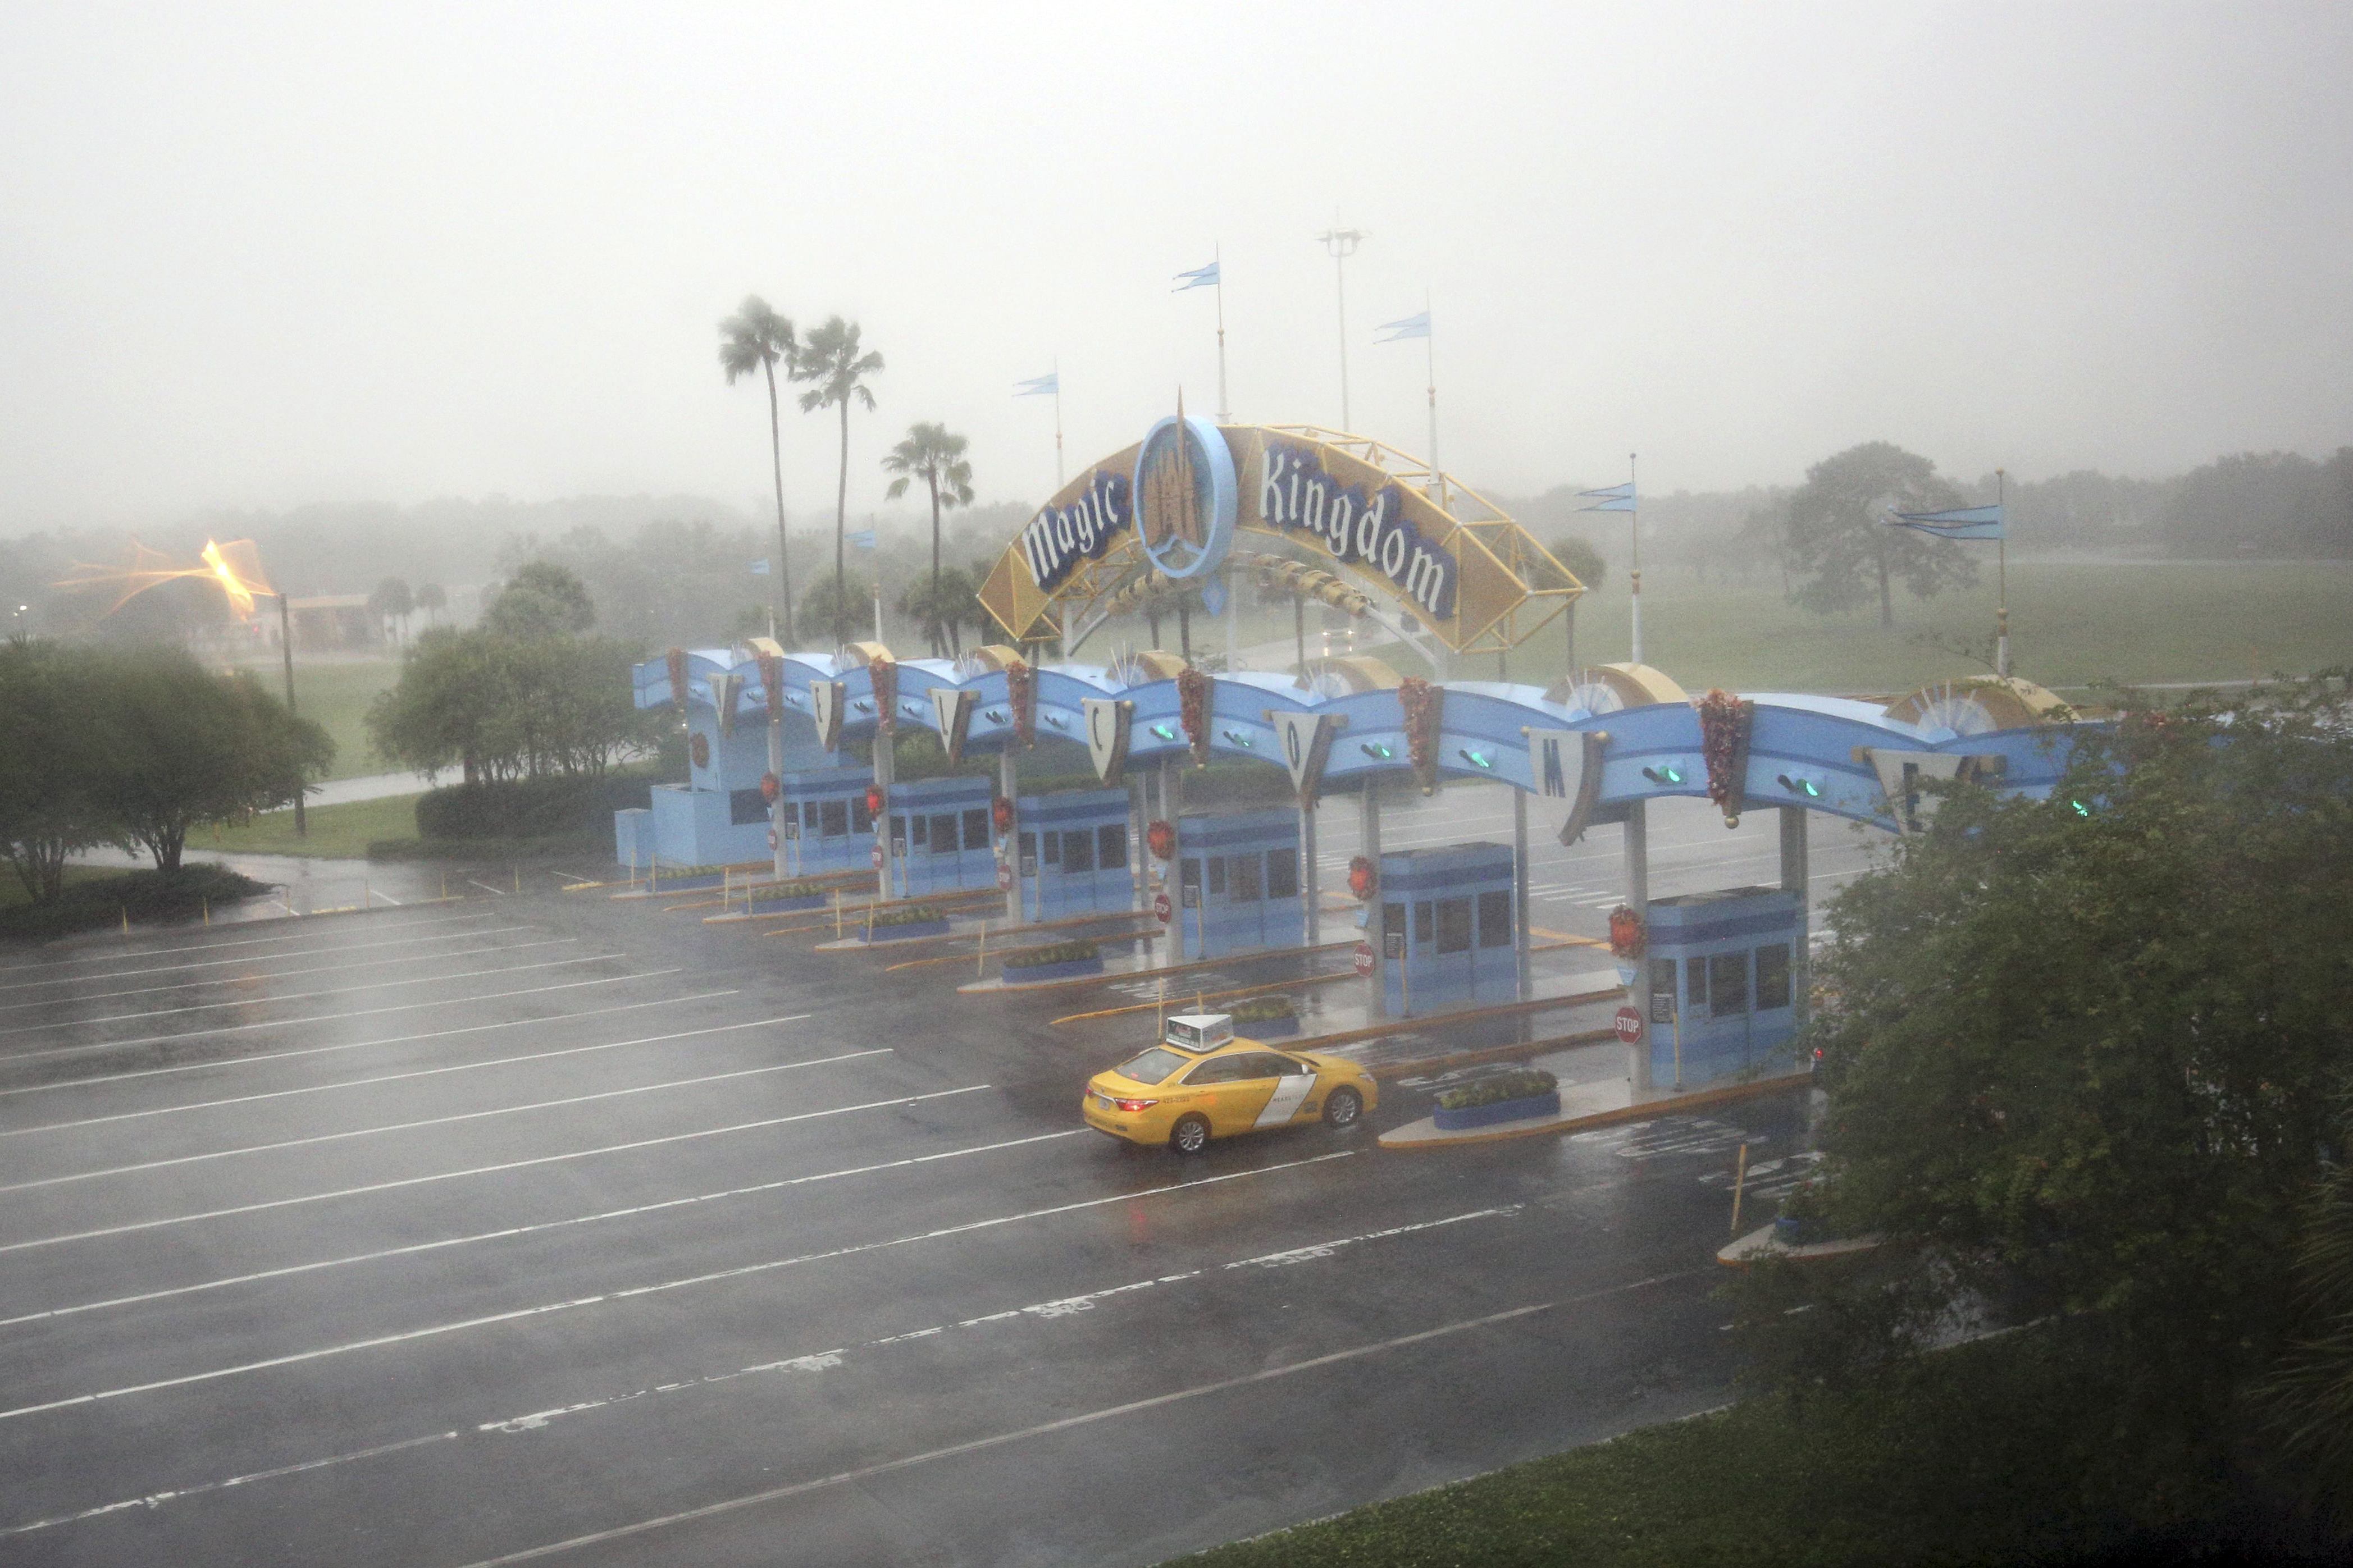 A lone taxi heads toward the Walt Disney World Resort area in Orlando, Florida, before the landfall of Hurricane Matthew, on October 6, 2016.